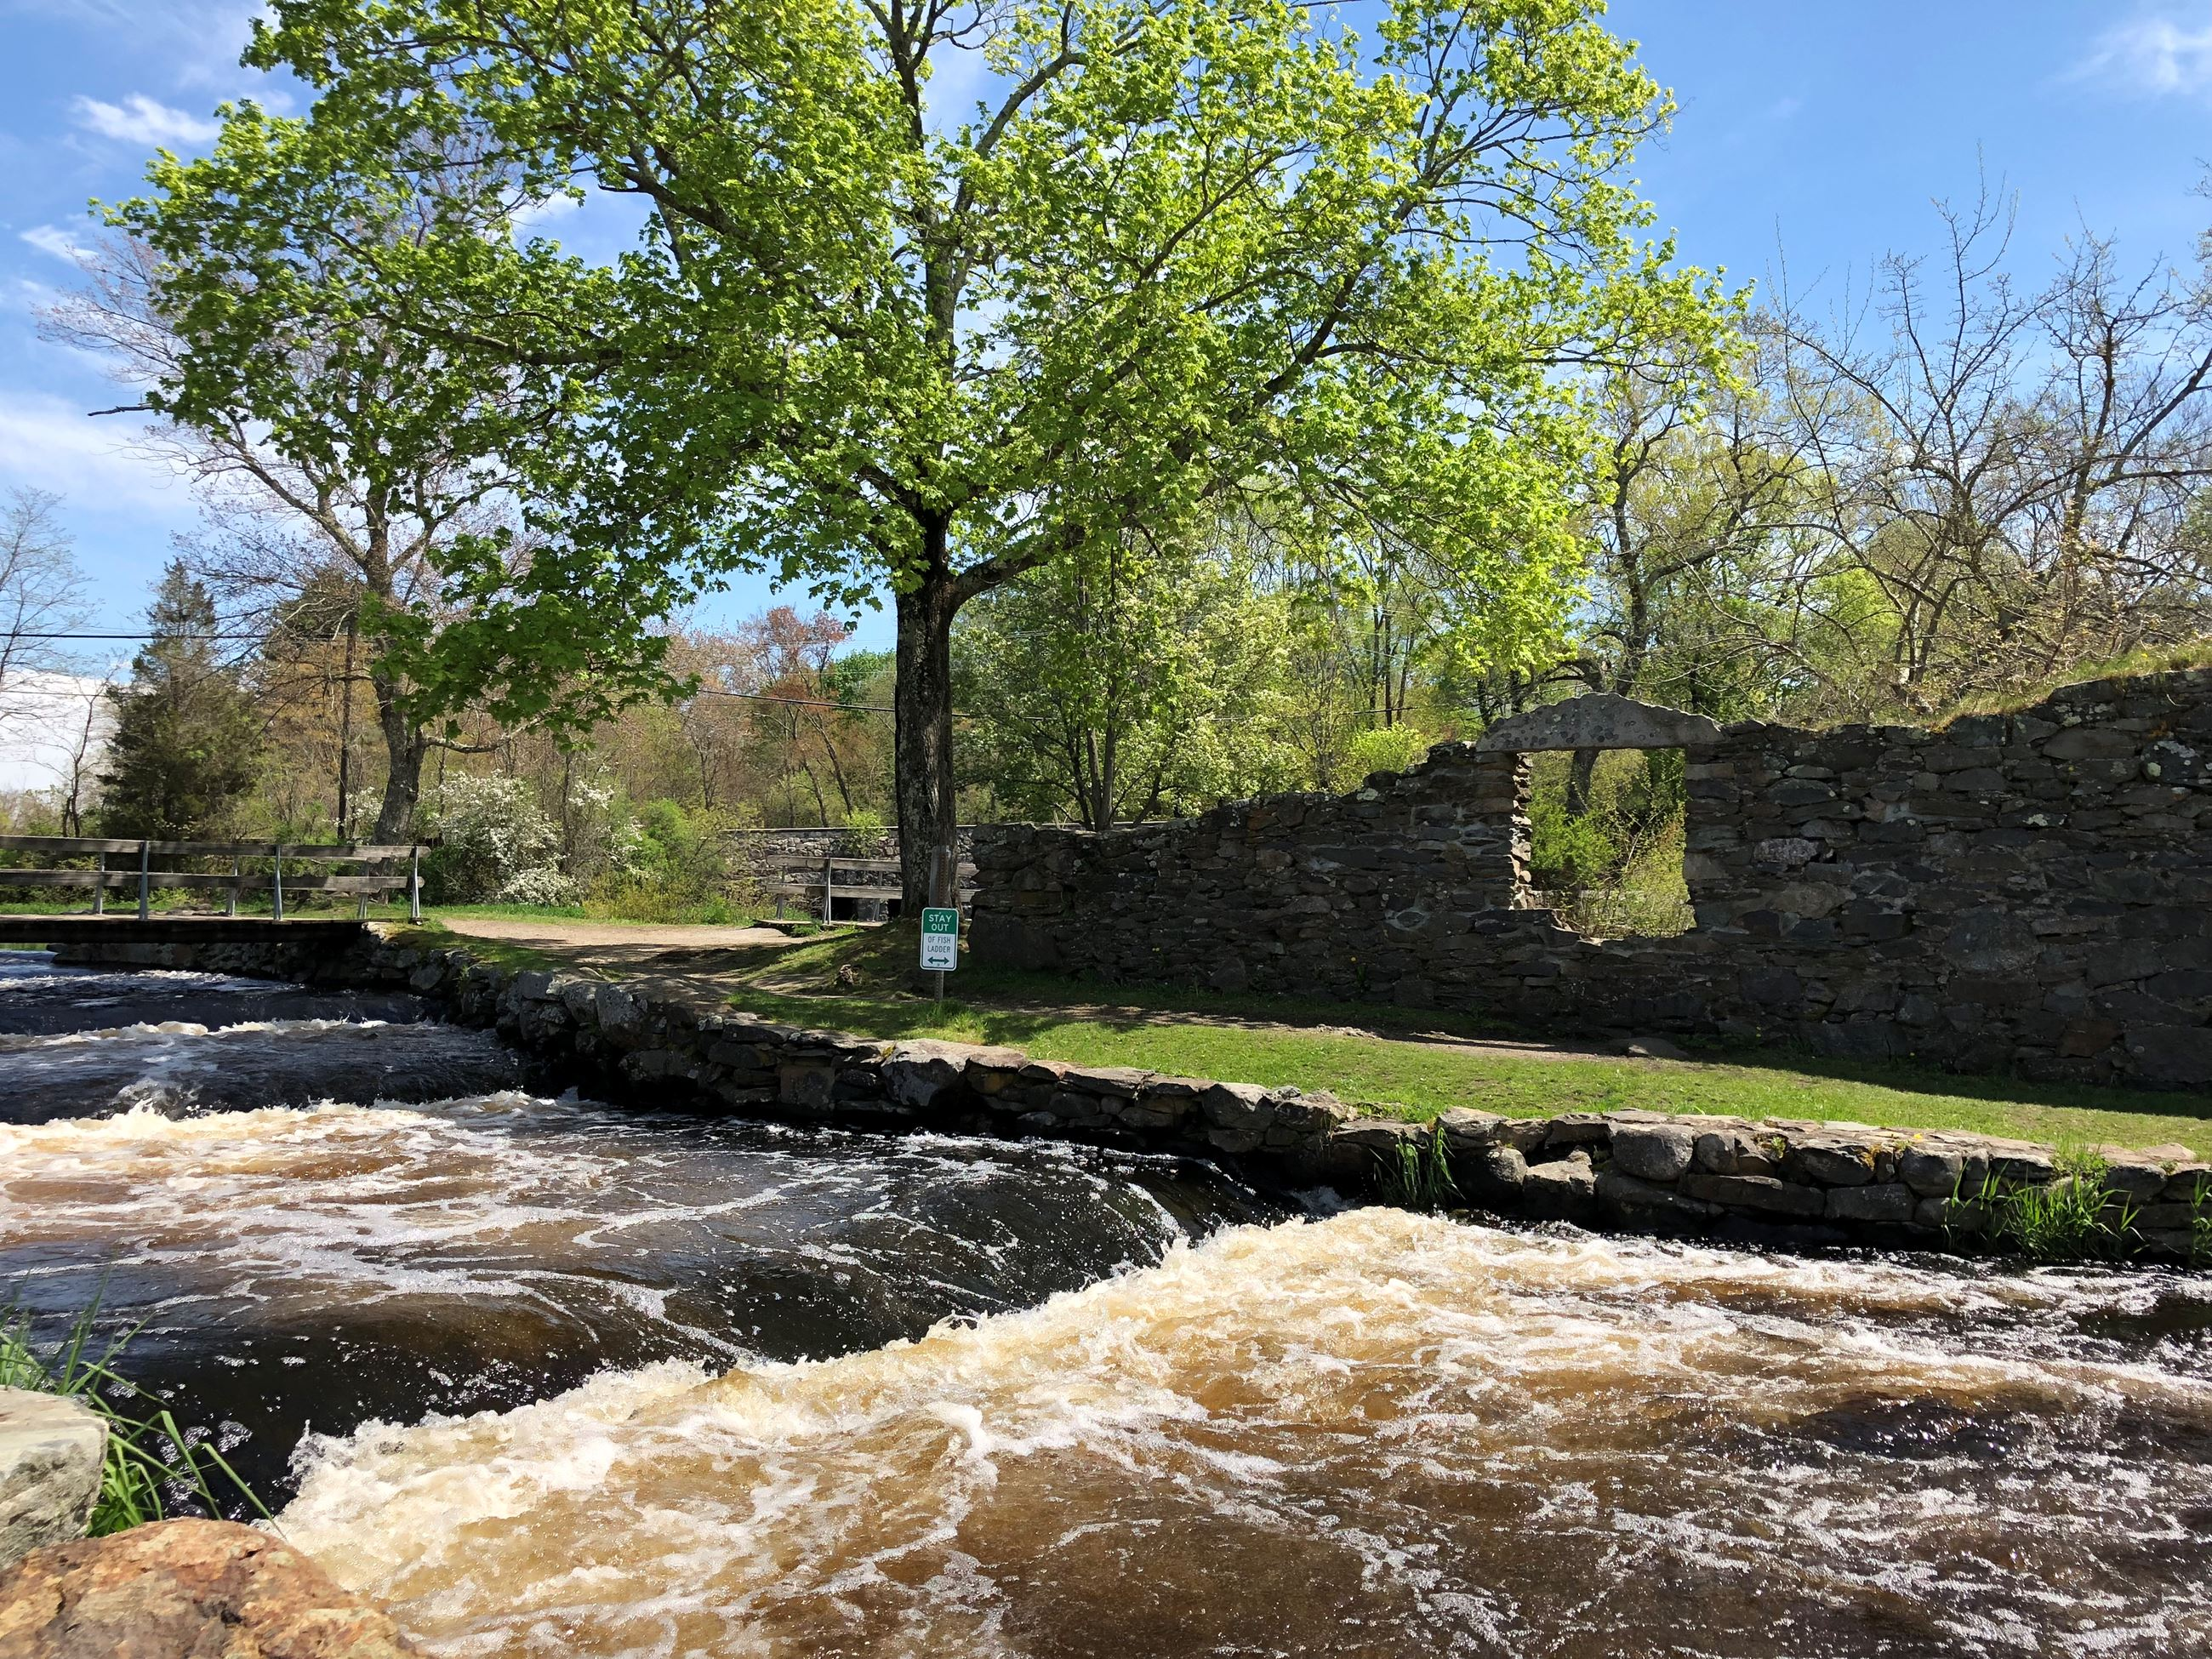 herring run at Oliver Mill Park